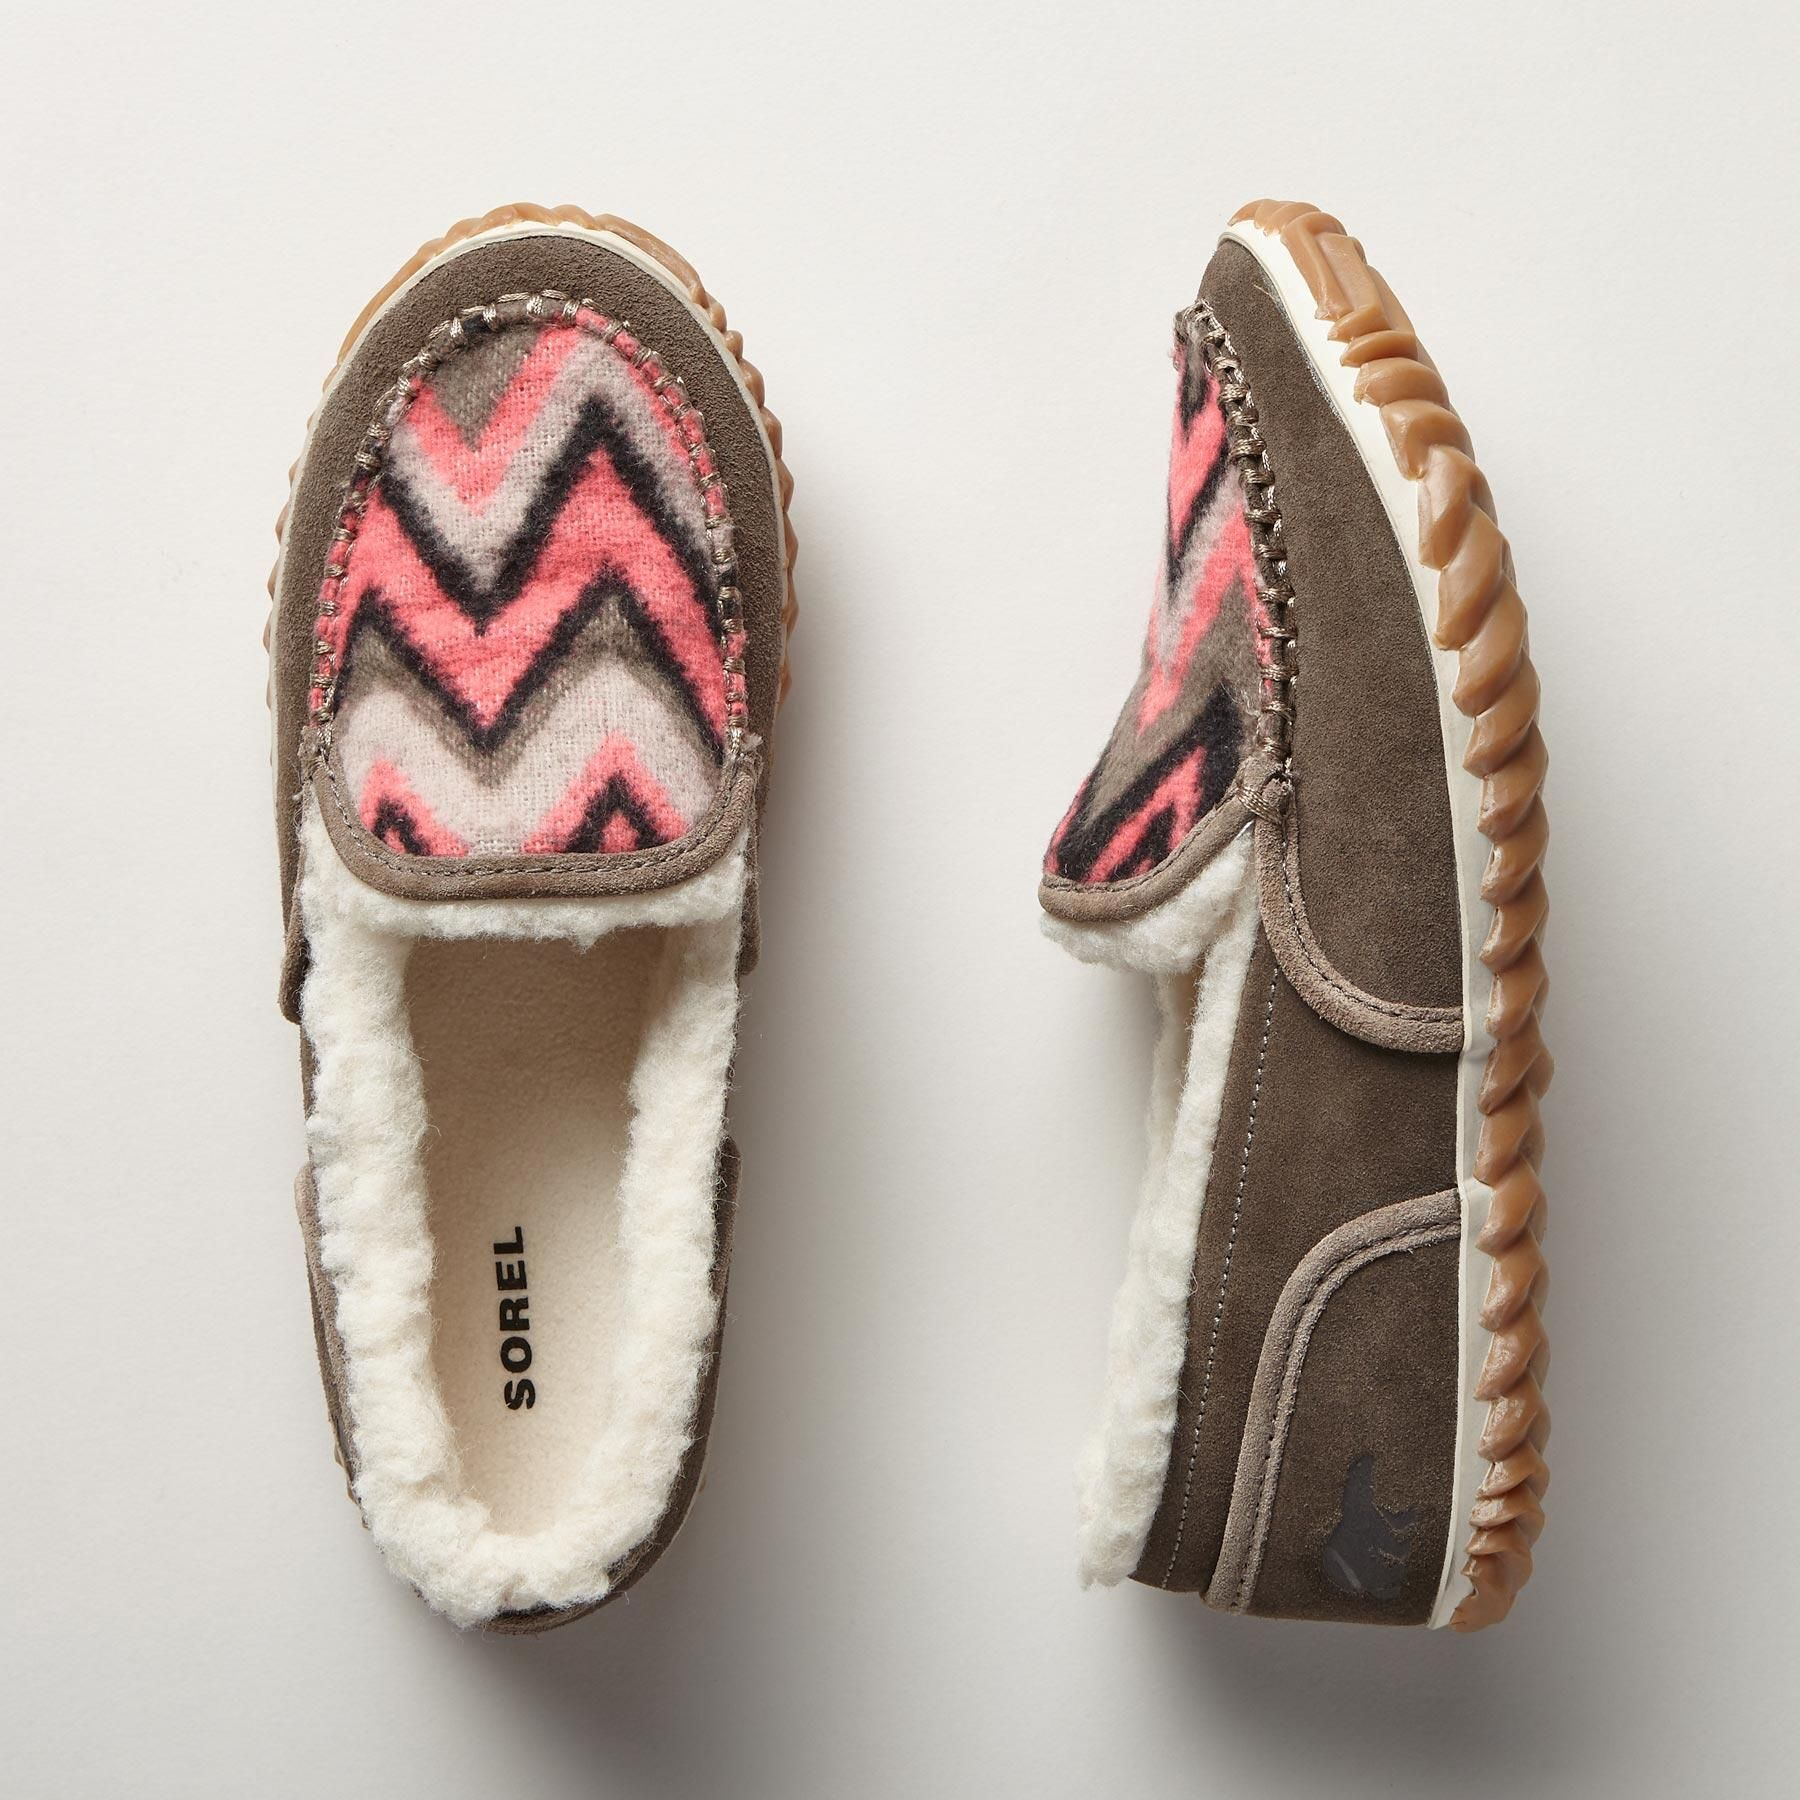 TREMBLANT MOCCASINS -- Sorel® does the best indoor-outdoor moccasin ever,  with